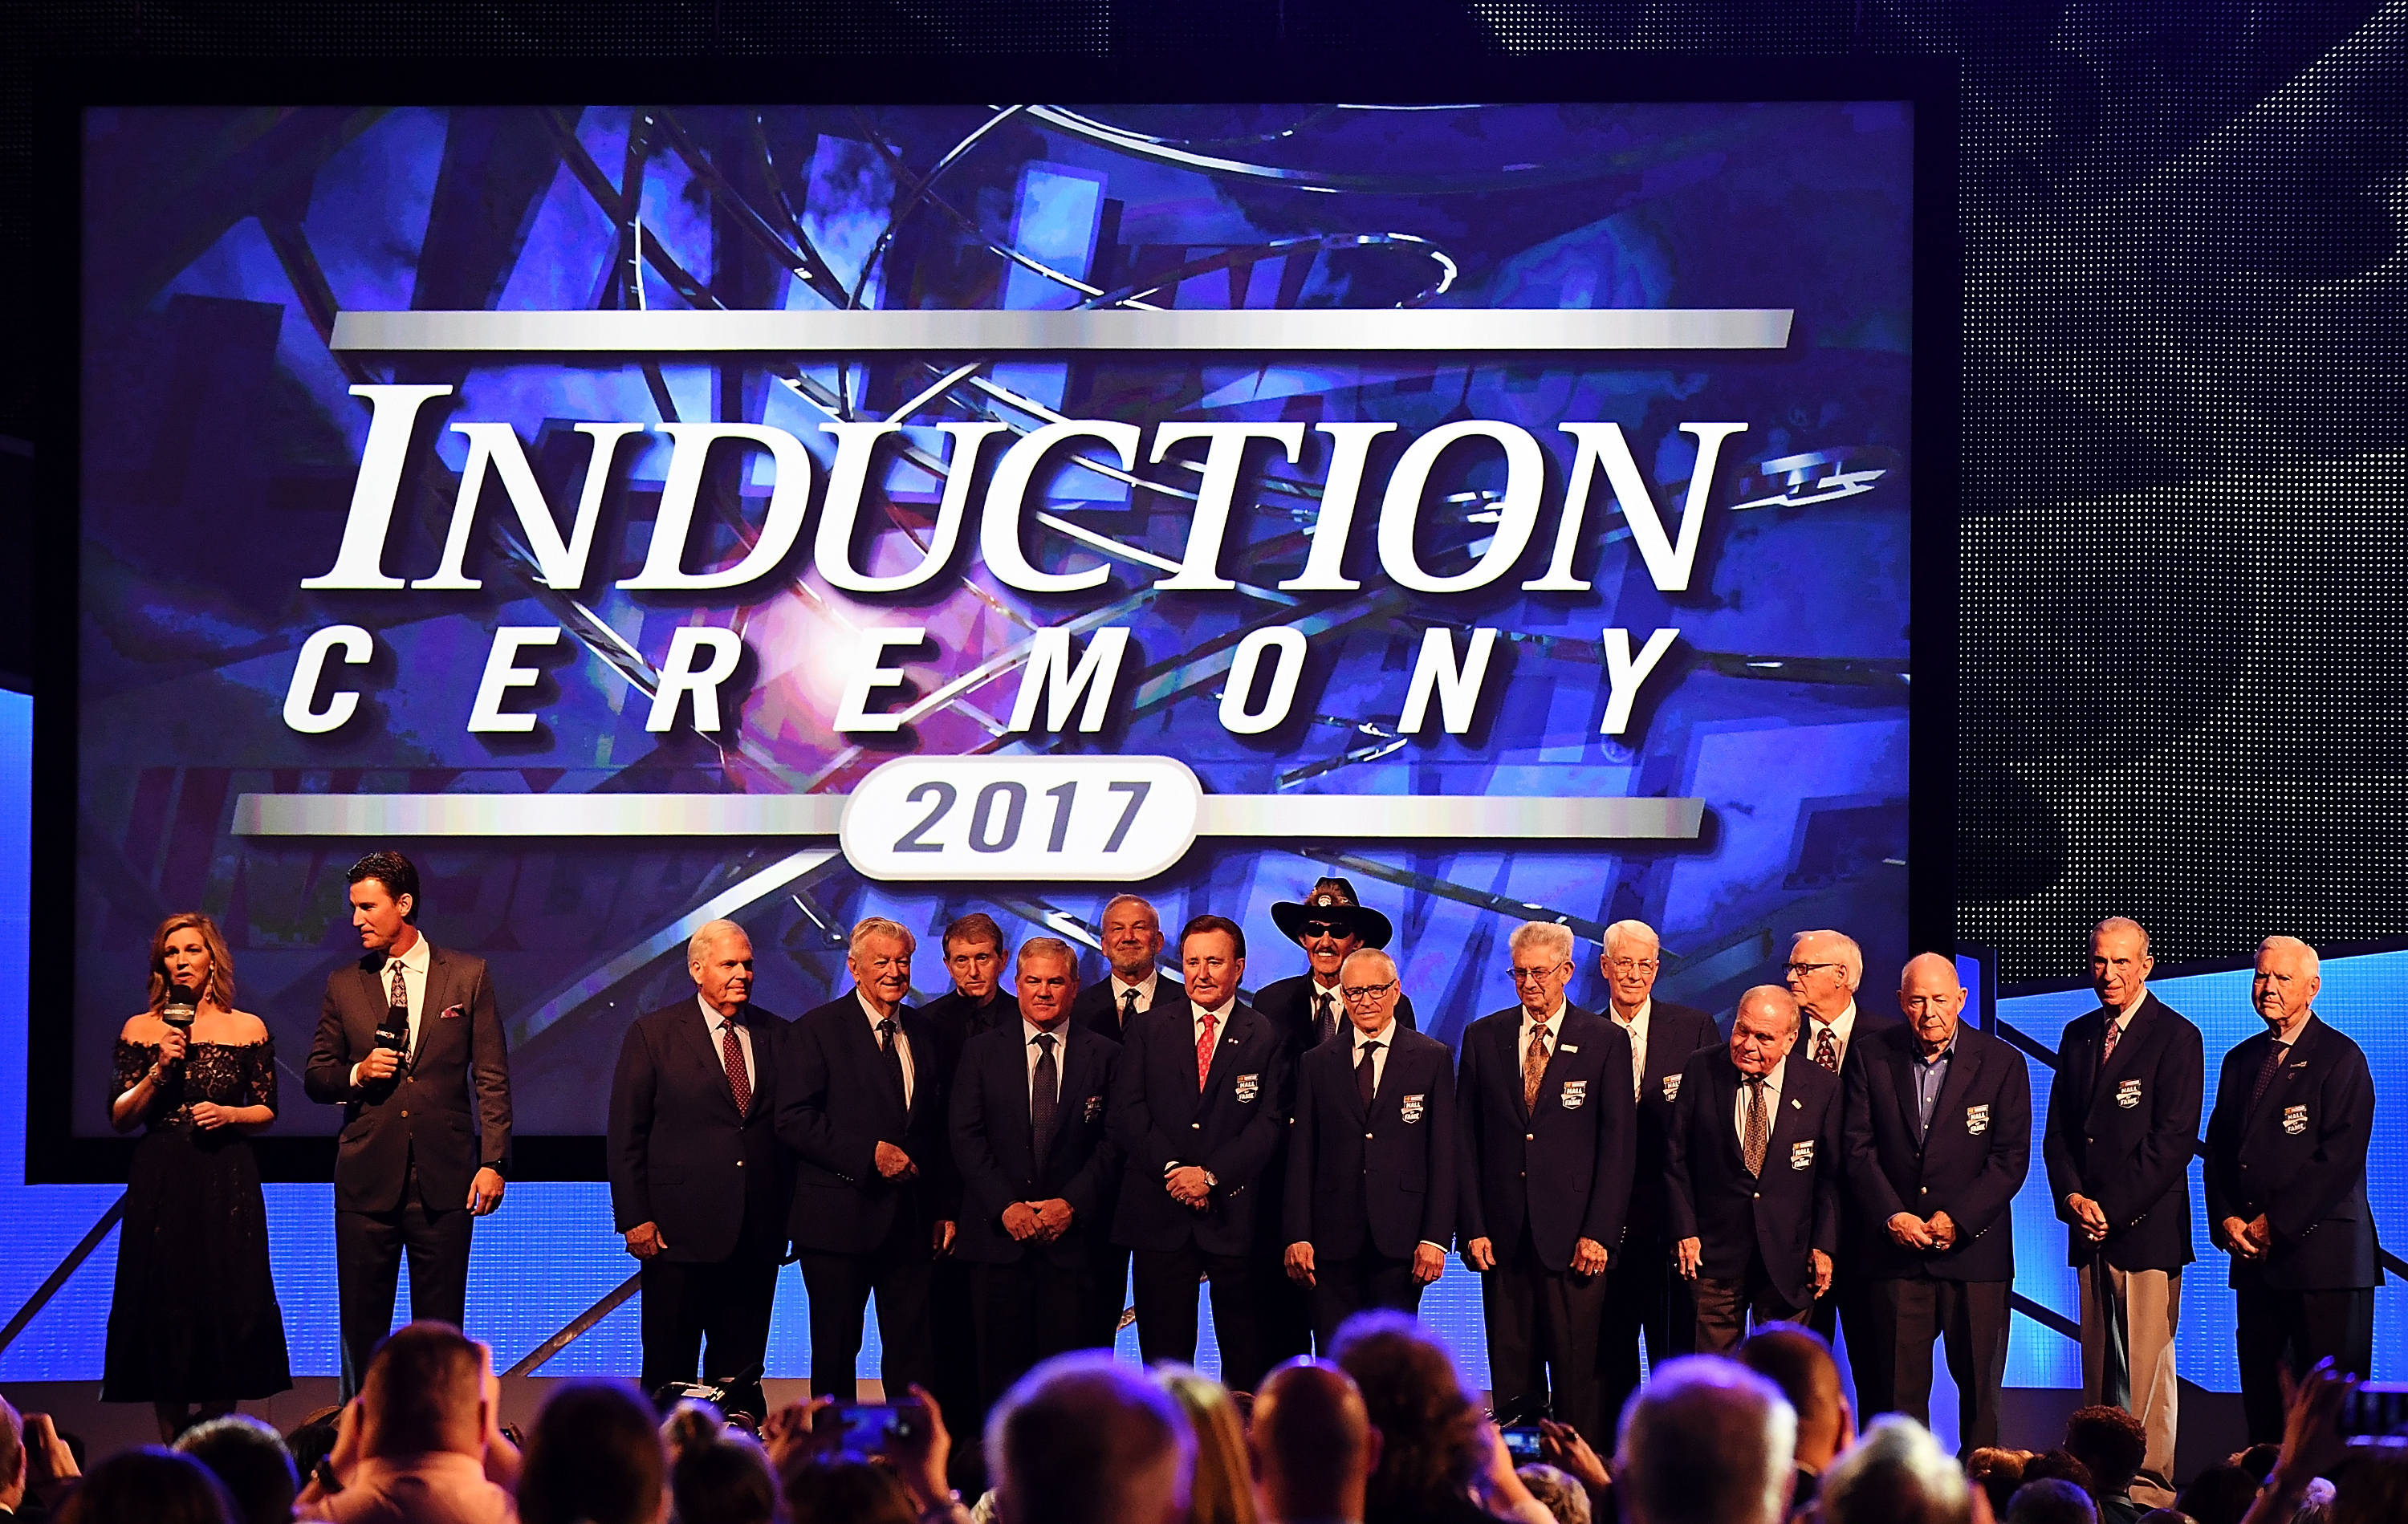 NASCAR Hall of Fame Class of 2017 Induction Ceremony